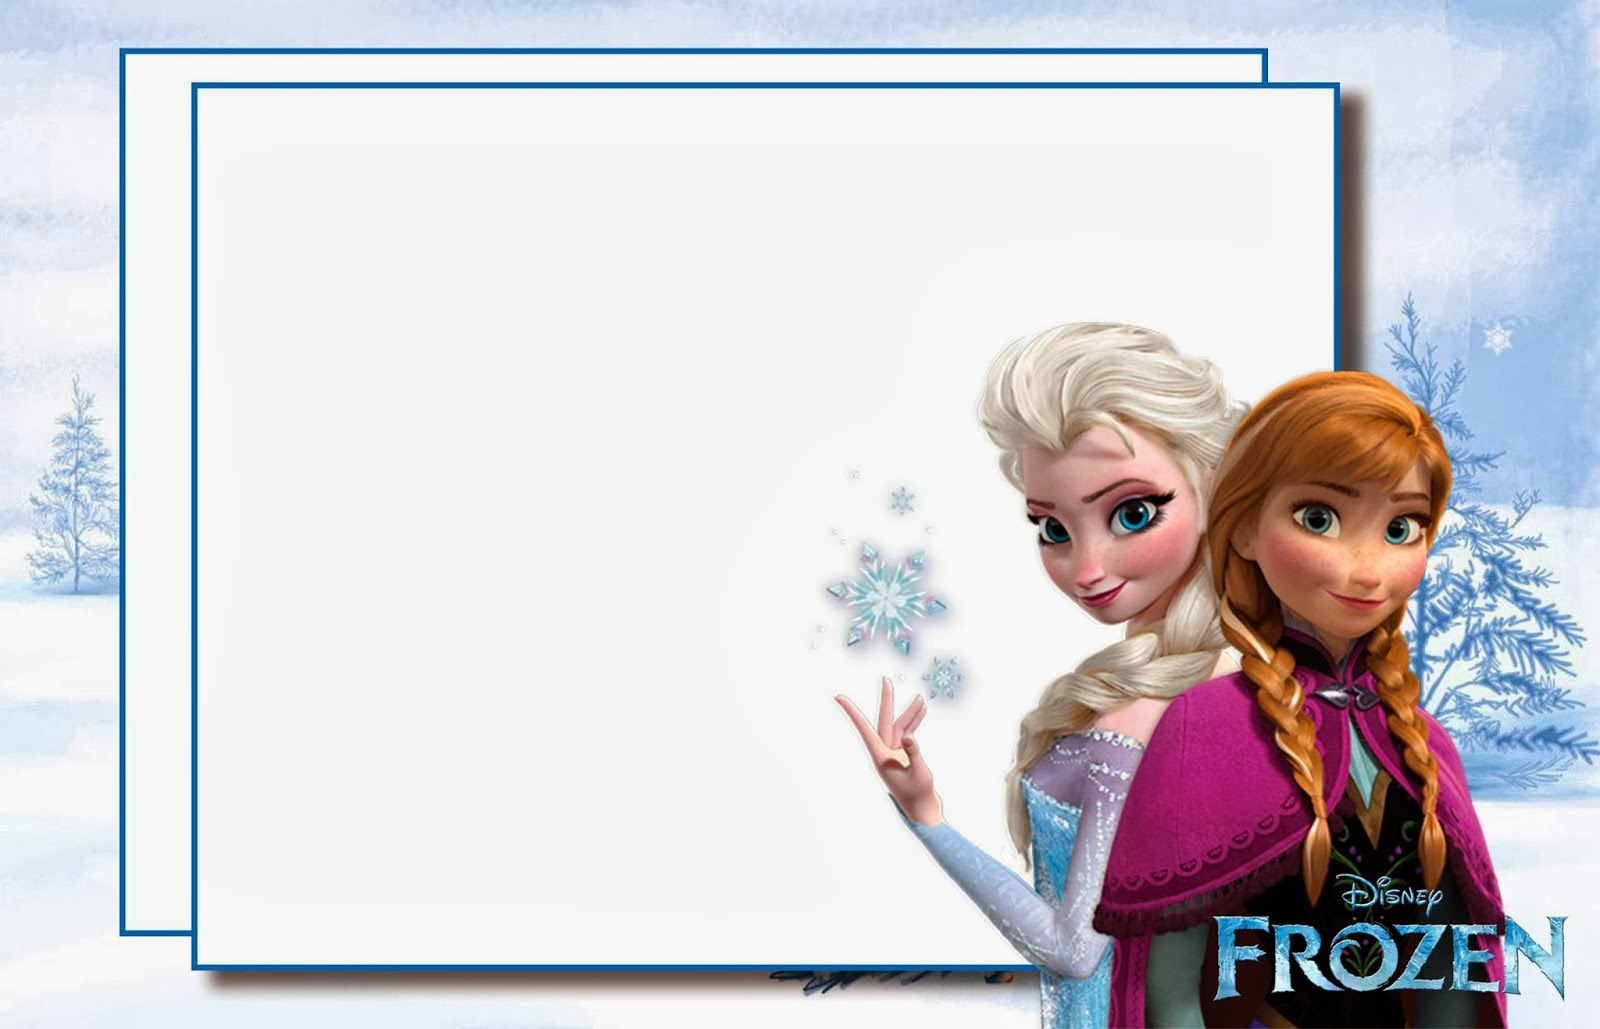 photo about Frozen Invitations Printable titled Frozen Occasion: No cost Printable Invites. - Oh My Fiesta! within